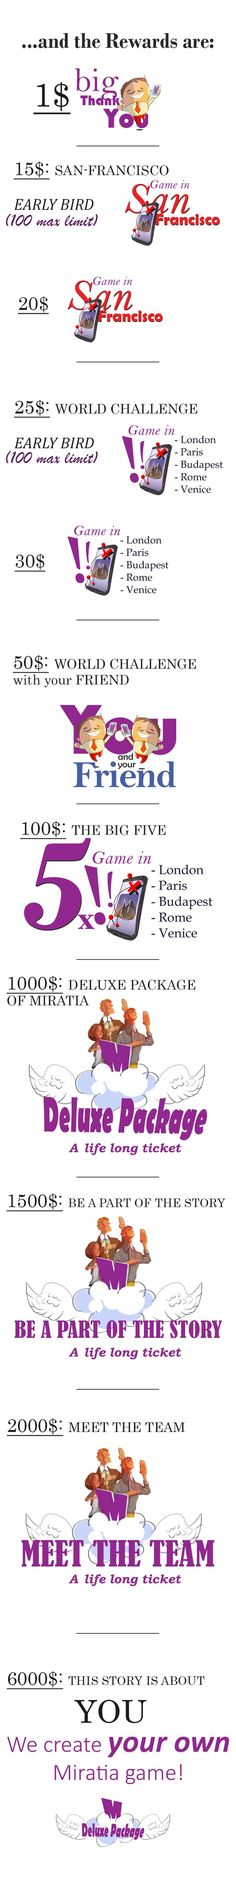 Miratia challange Use the Morse alphabet to decode what you hear!If you think you have the solution then send it to info@miratia.com. 10 lucky people will receive a Miratia Florin Card which allows to play one professional Miratia game in London, Paris, Rome, Venice or even in Budapest!https://youtu.be/_5AKowpiaWc